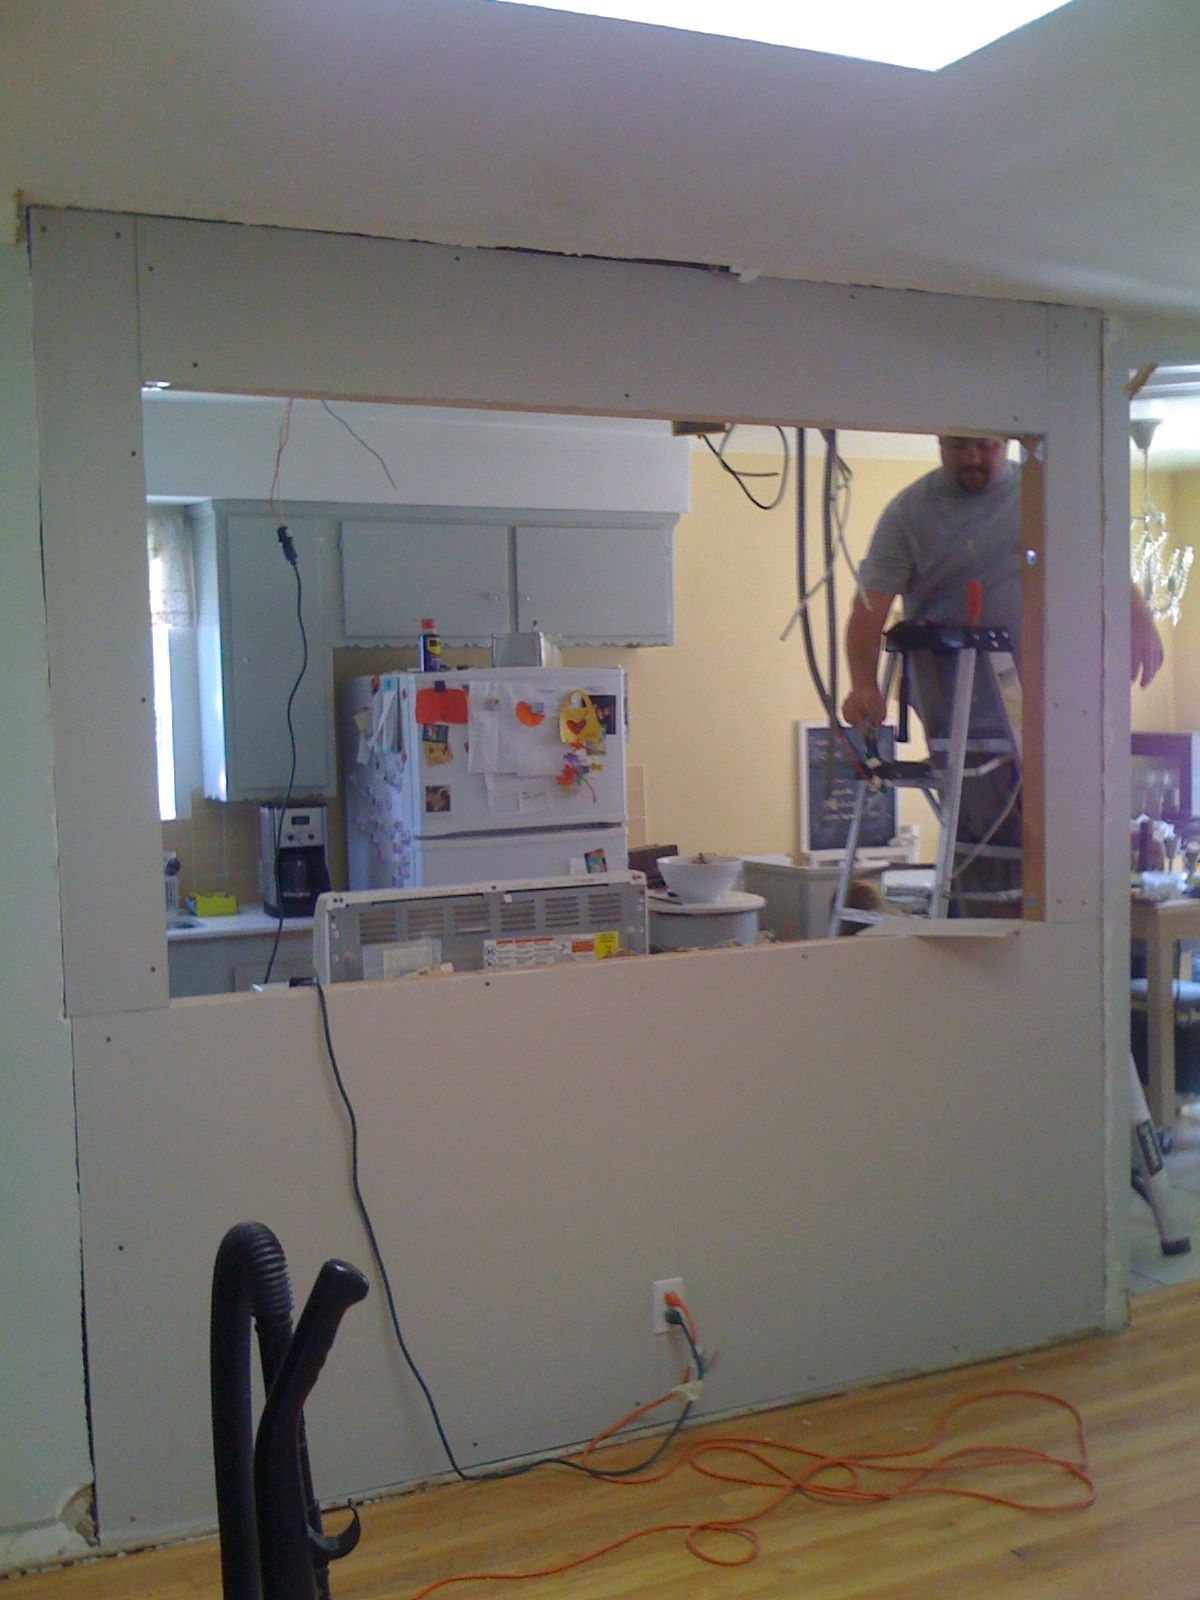 KNOCKING OUT A WALL TO INSTALL A BAR